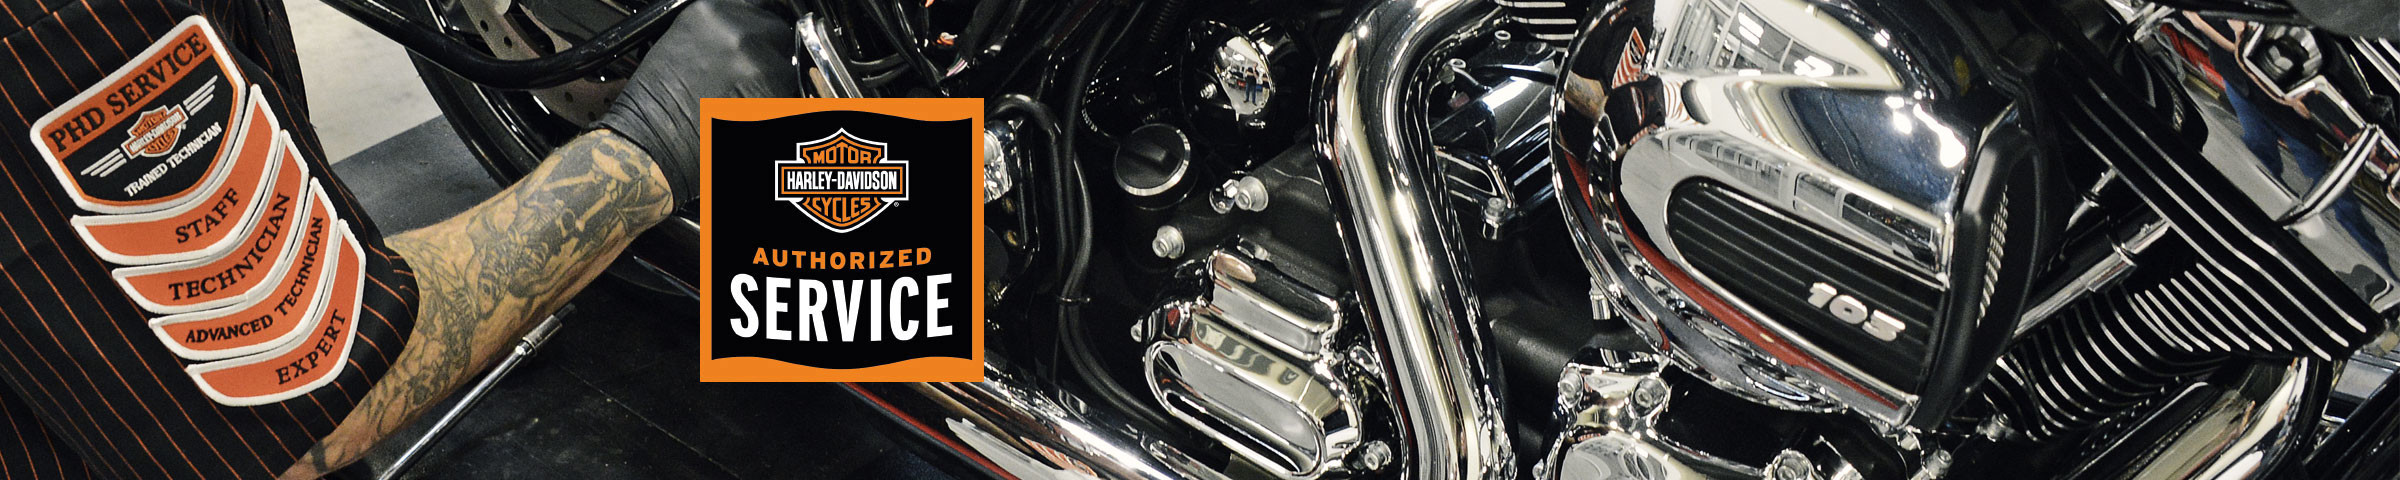 Doc's Harley-Davidson® Winter Storage